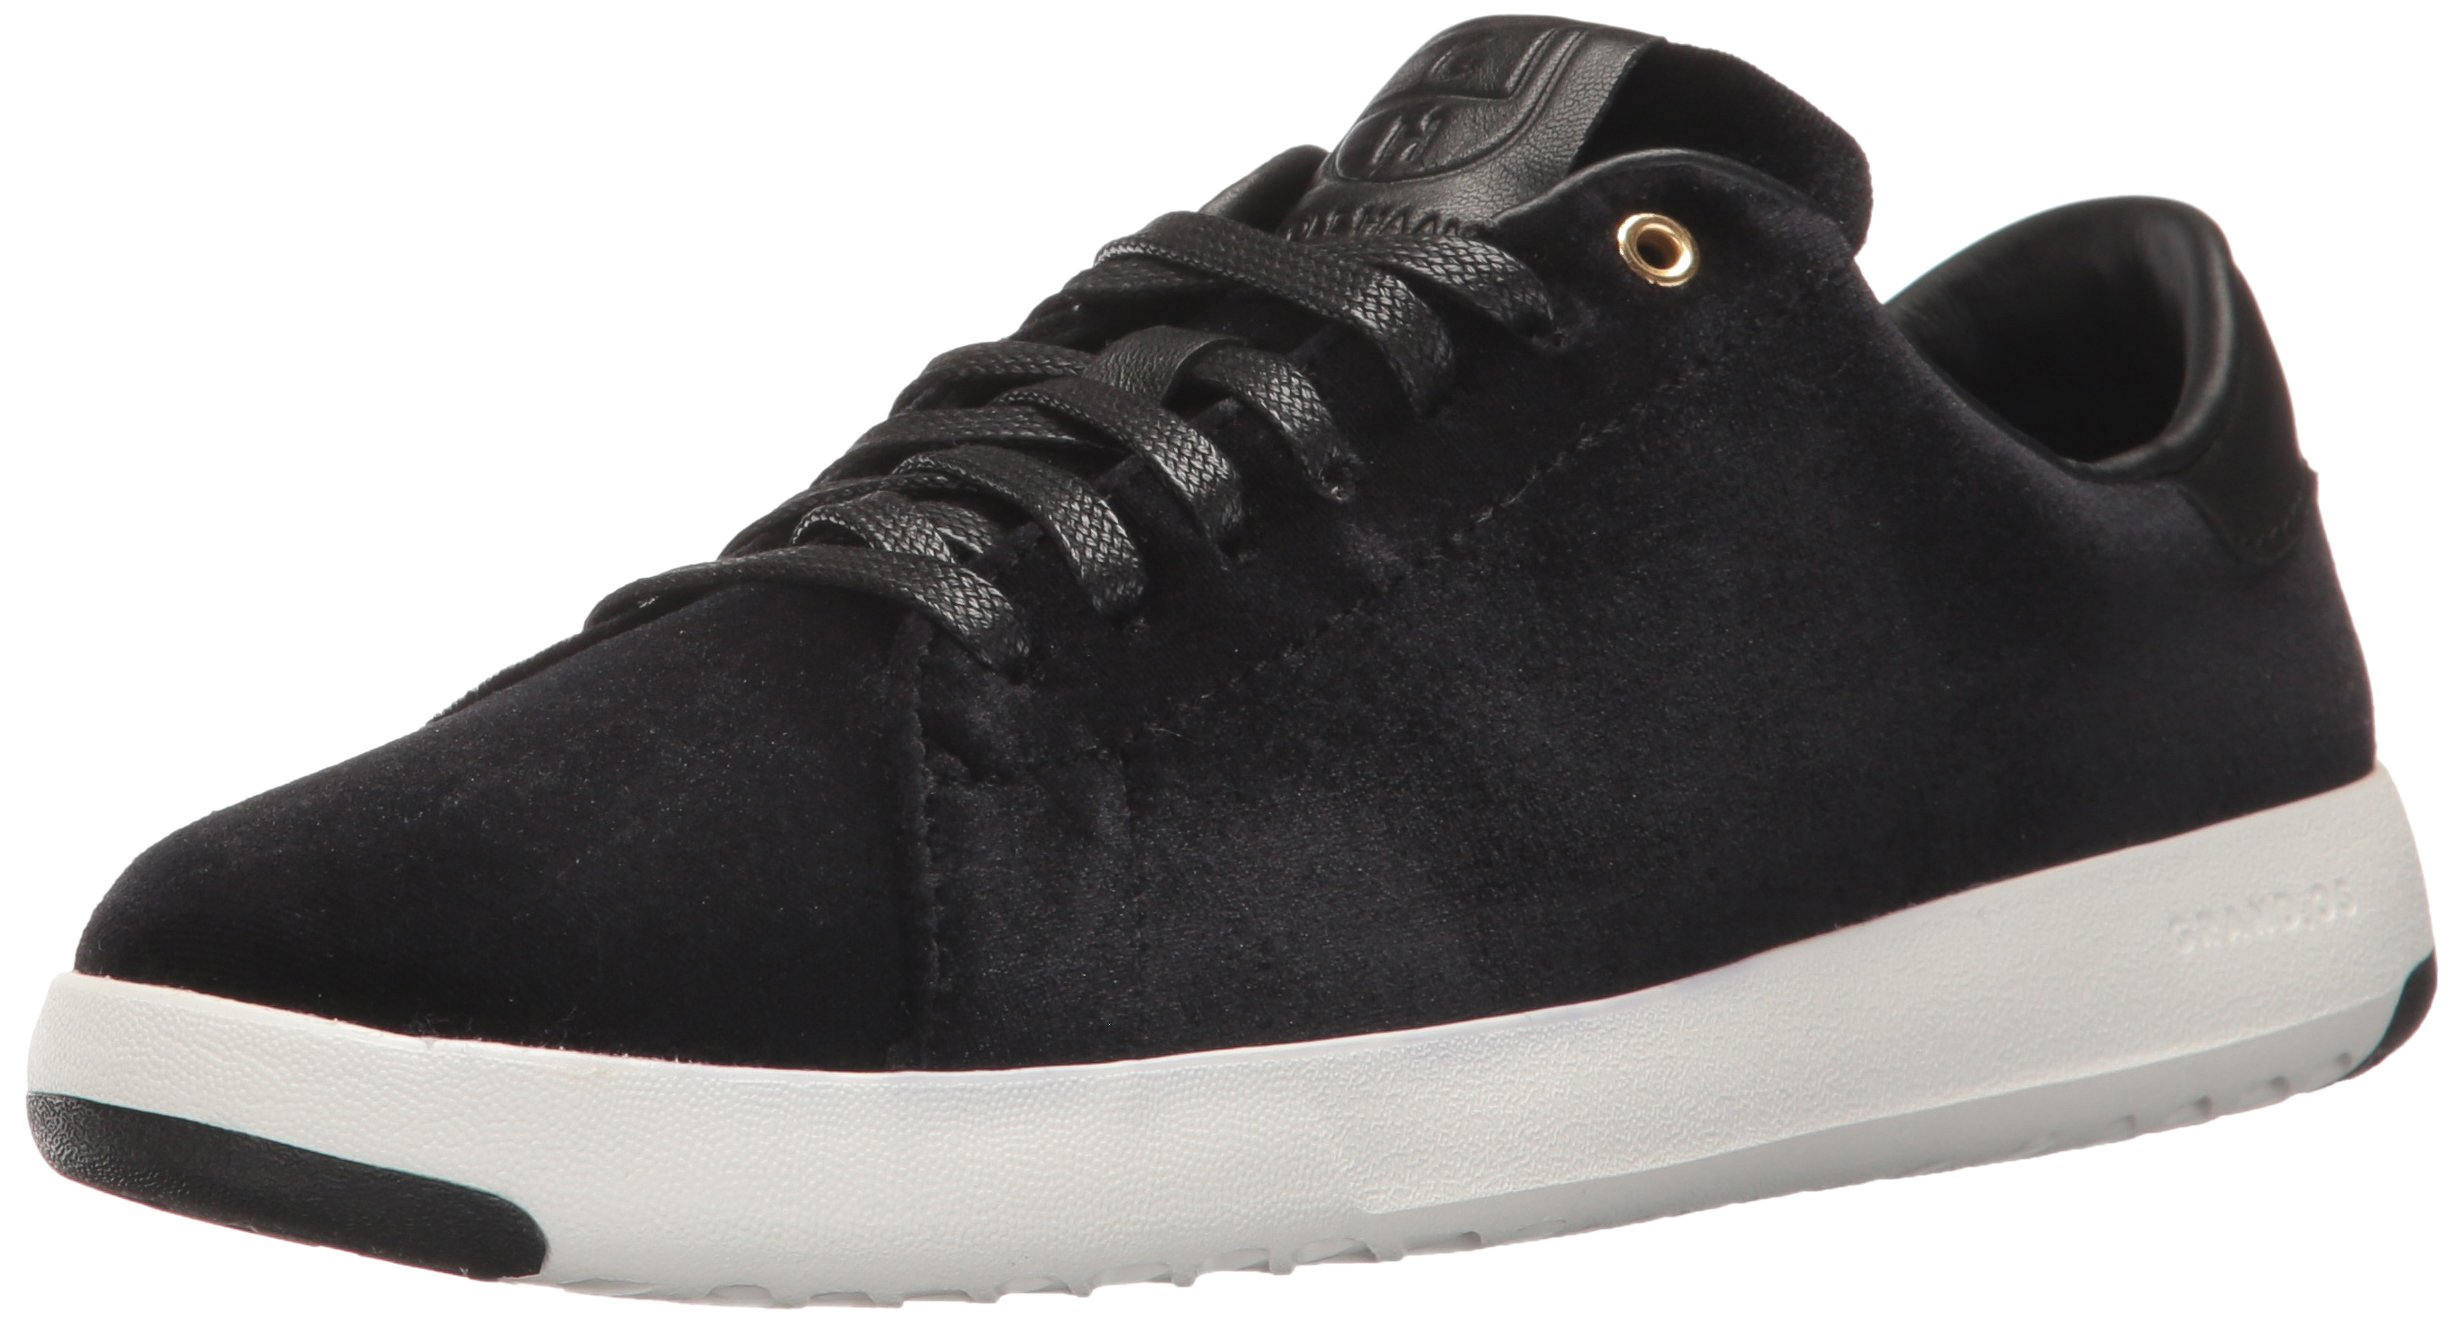 Cole Haan Women's Grandpro Tennis, Black, 6 B US